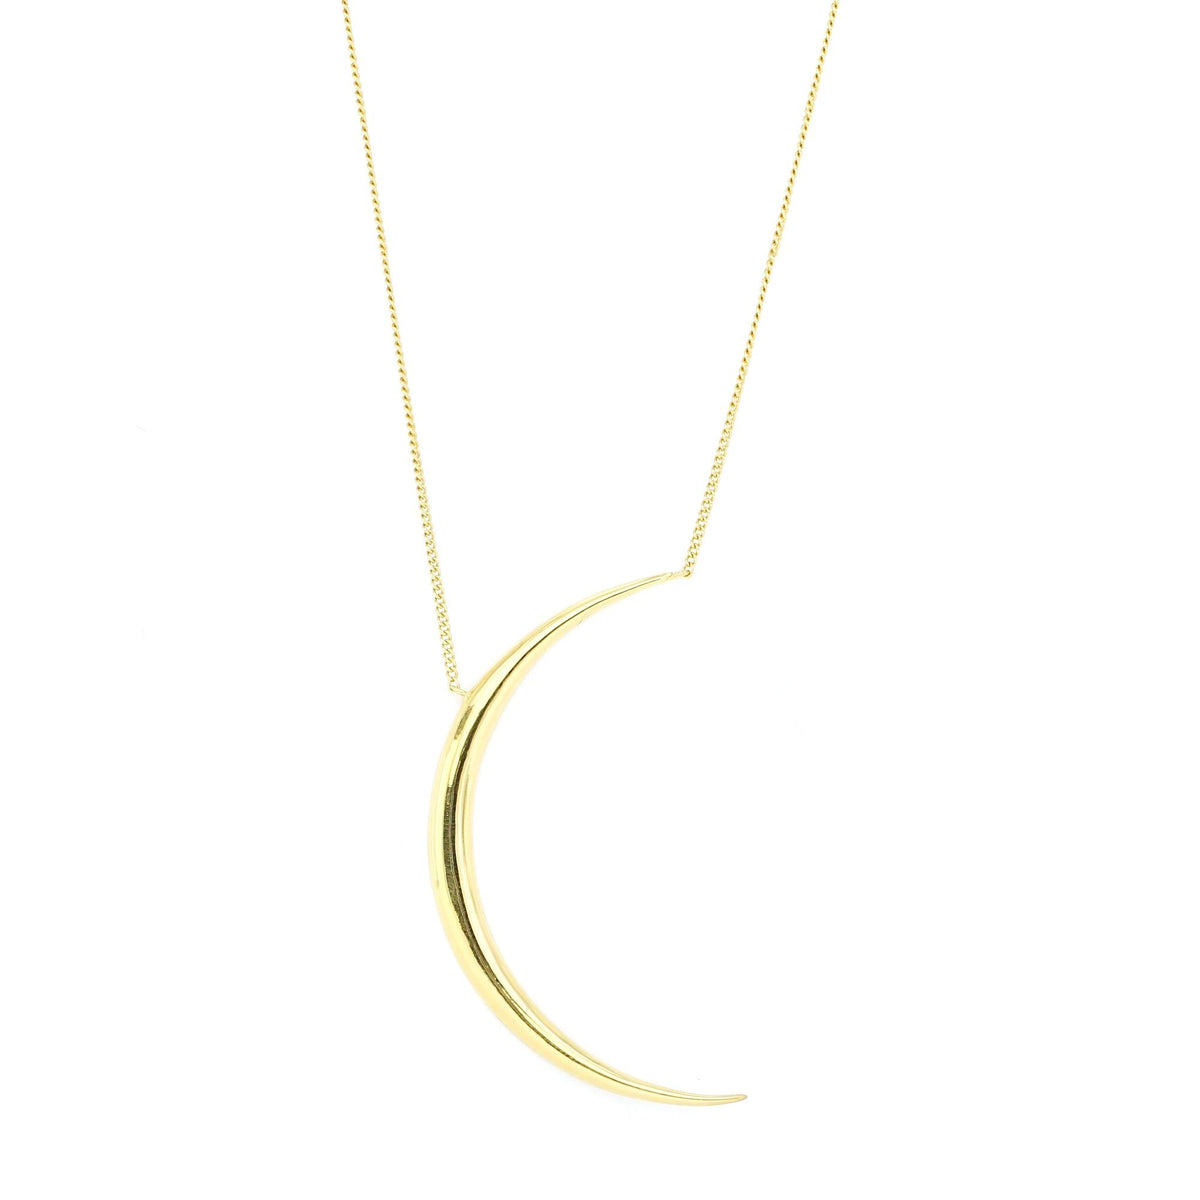 DREAM LUNA CRESCENT PENDANT NECKLACE - GOLD - SO PRETTY CARA COTTER